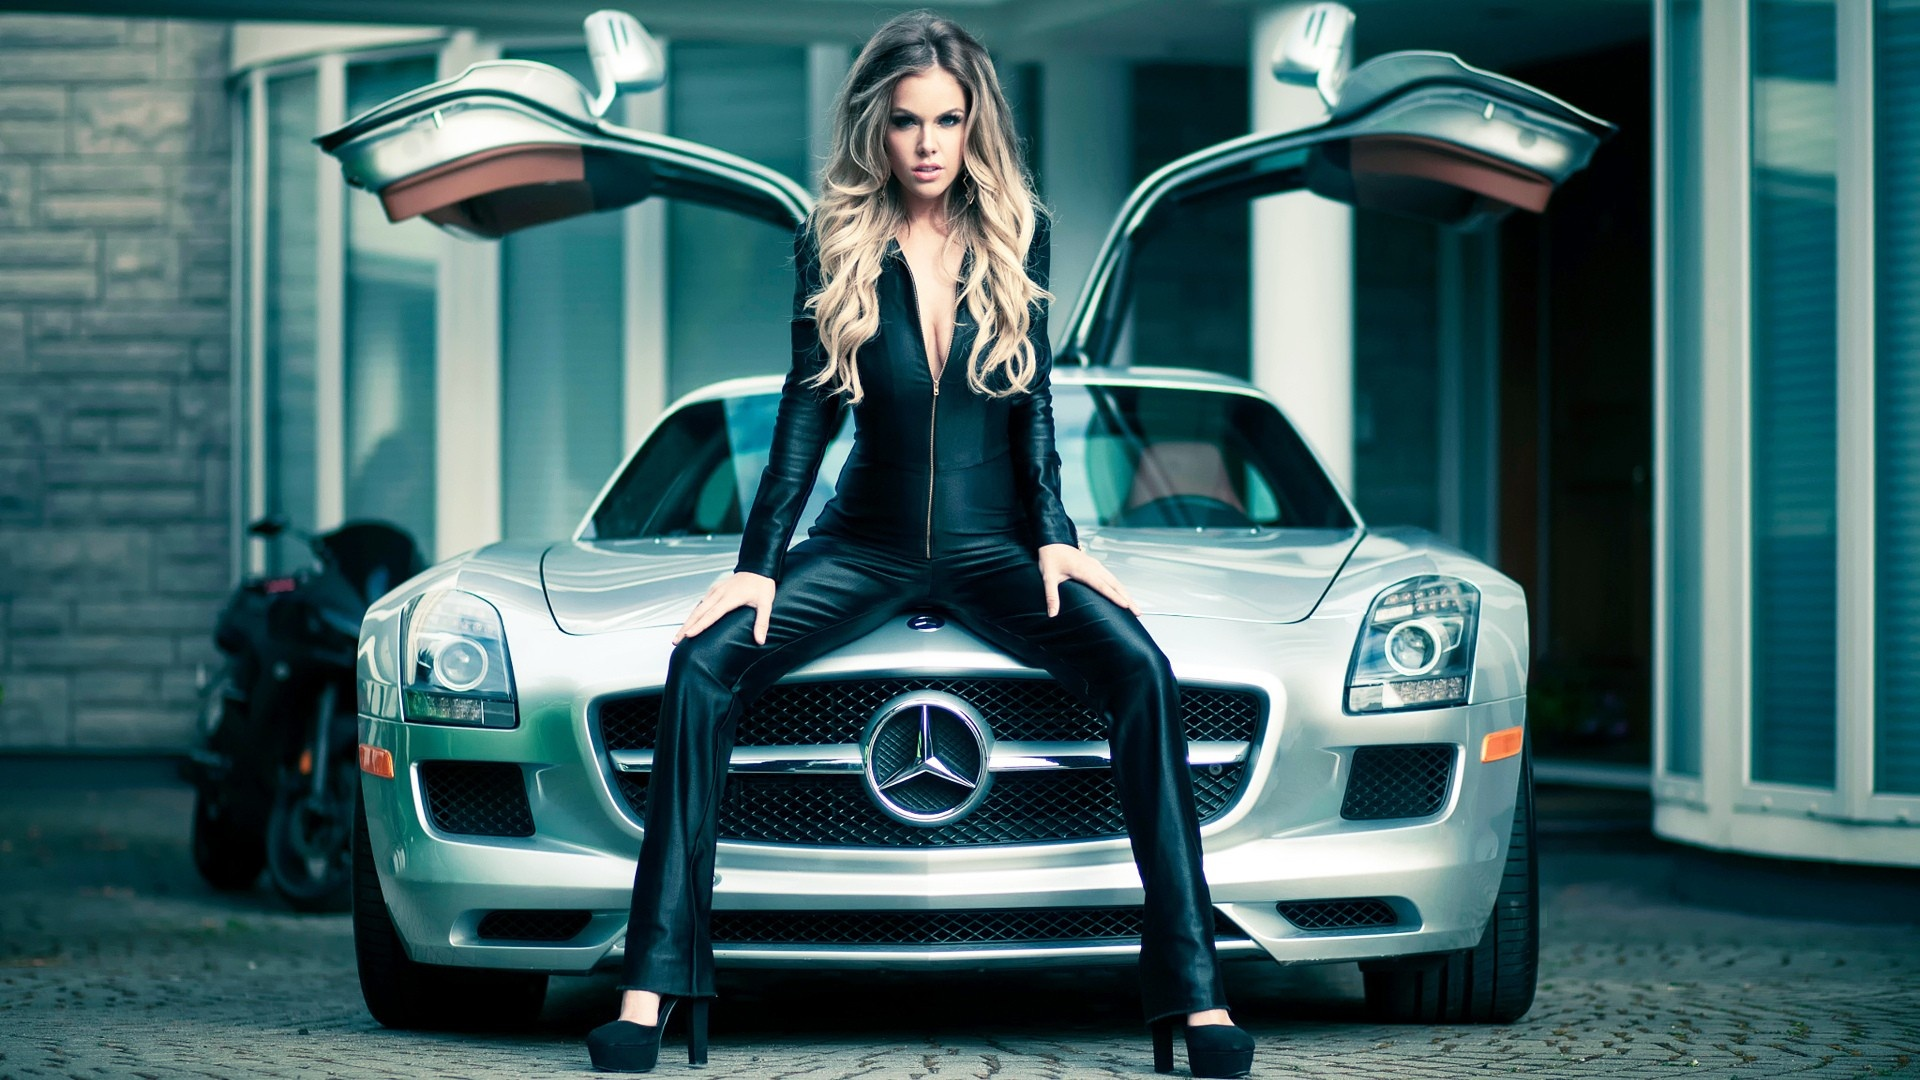 Sport Car And Girl Wallpaper: Sensuality Sensual Sexy Woman Girl Model Machine Car